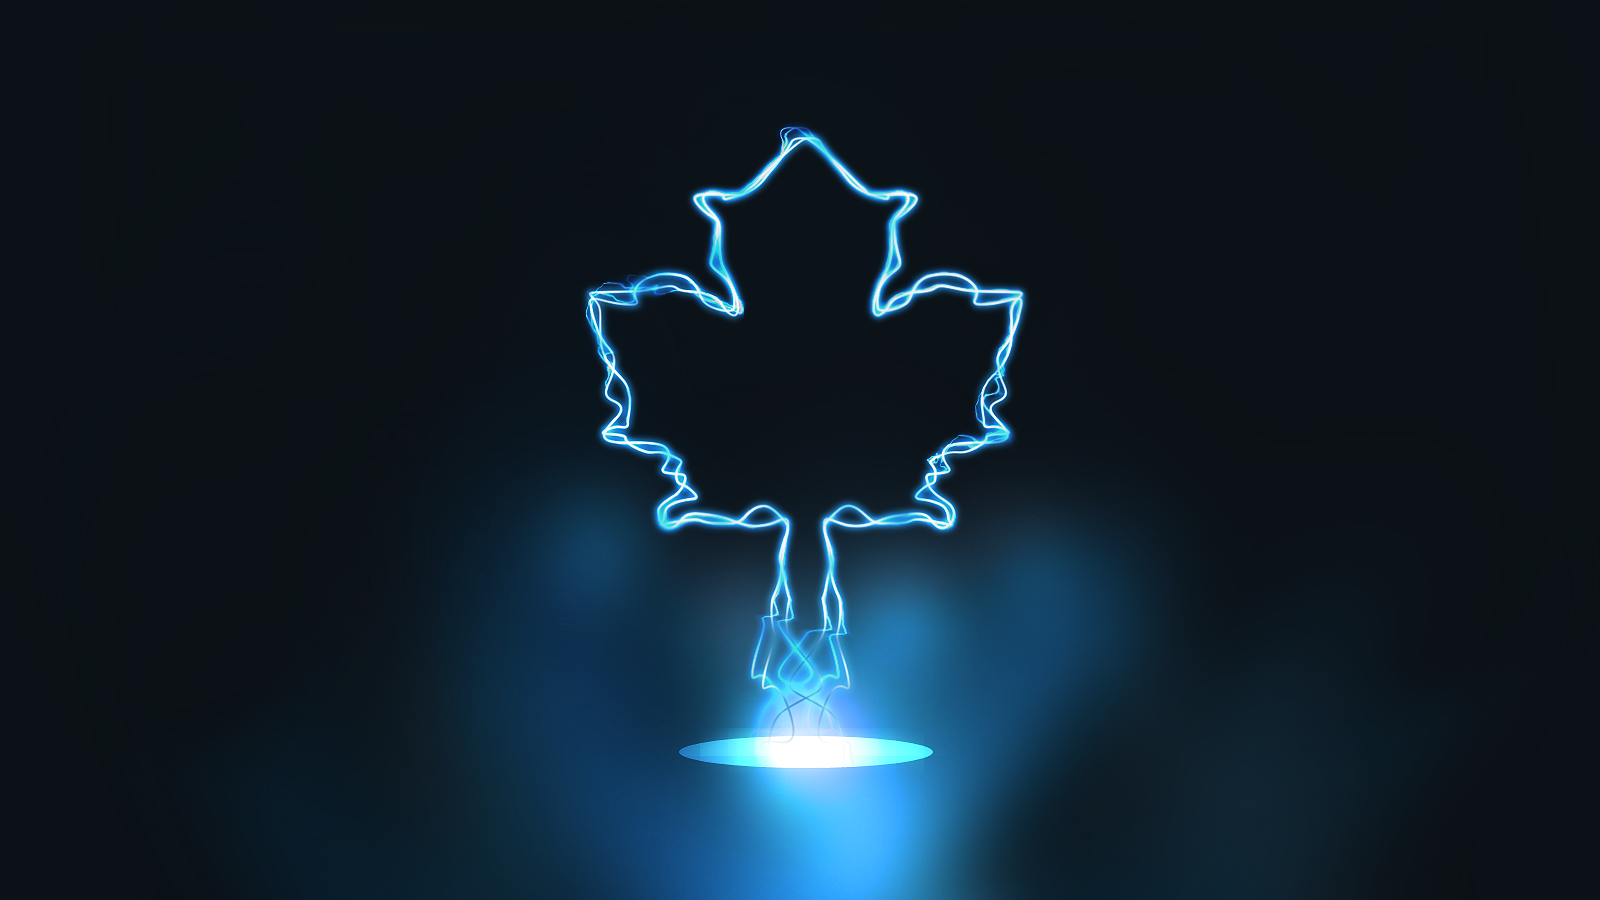 Toronto Maple Leafs wallpapers Toronto Maple Leafs background 1600x900